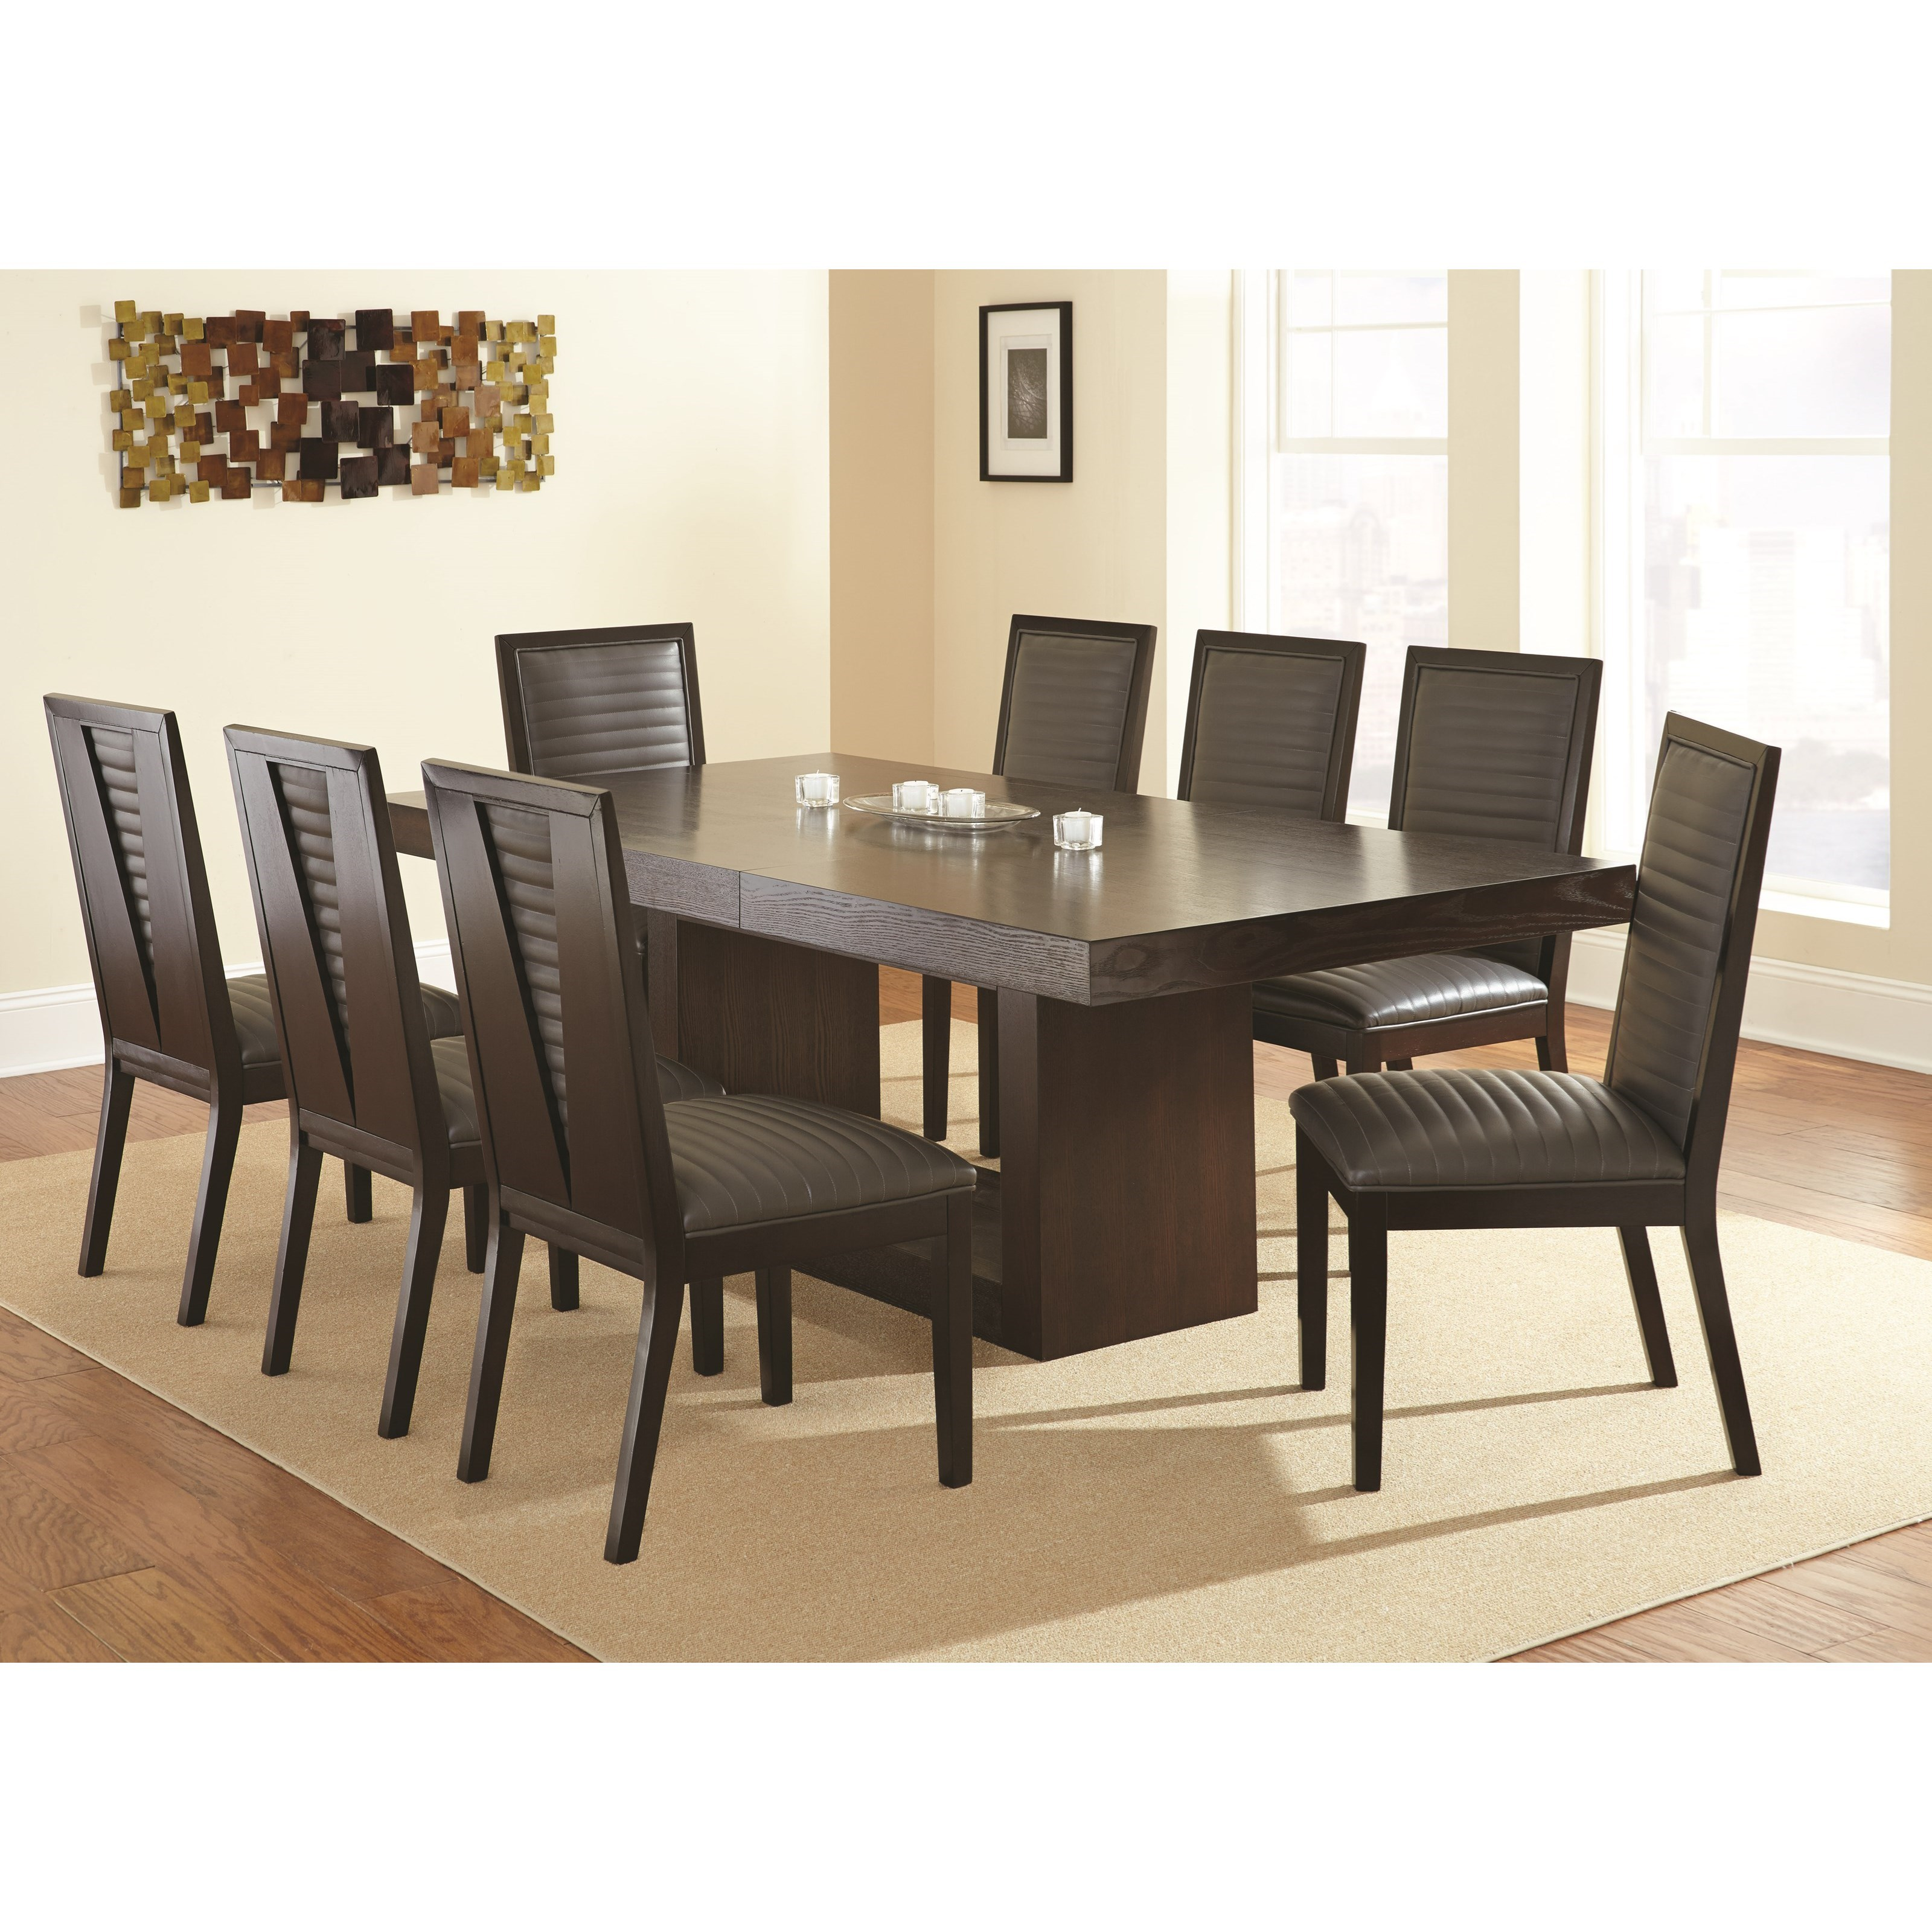 Antonio 7 Piece Dining Set by Steve Silver at Walker's Furniture